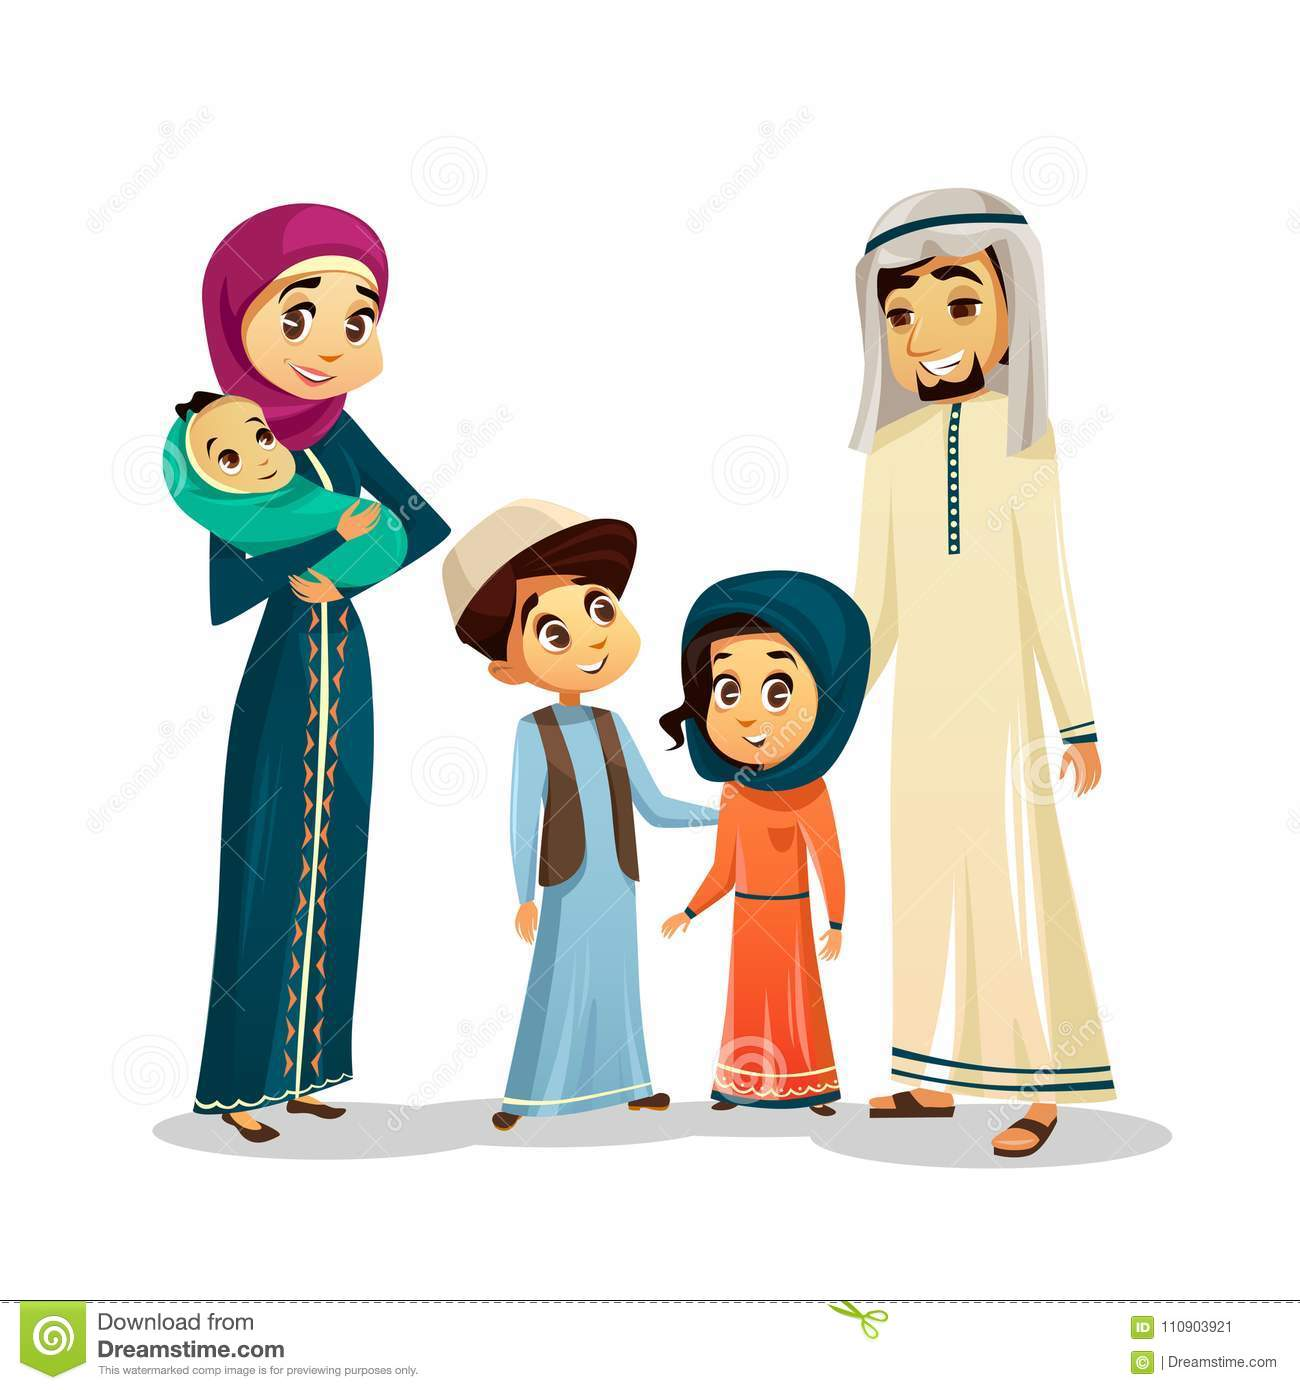 Arab Family In Traditional Clothing Vector Illustration Of Muslim Parents And Children In Arabian Clothes Stock Vector Illustration Of Beard Baby 110903921